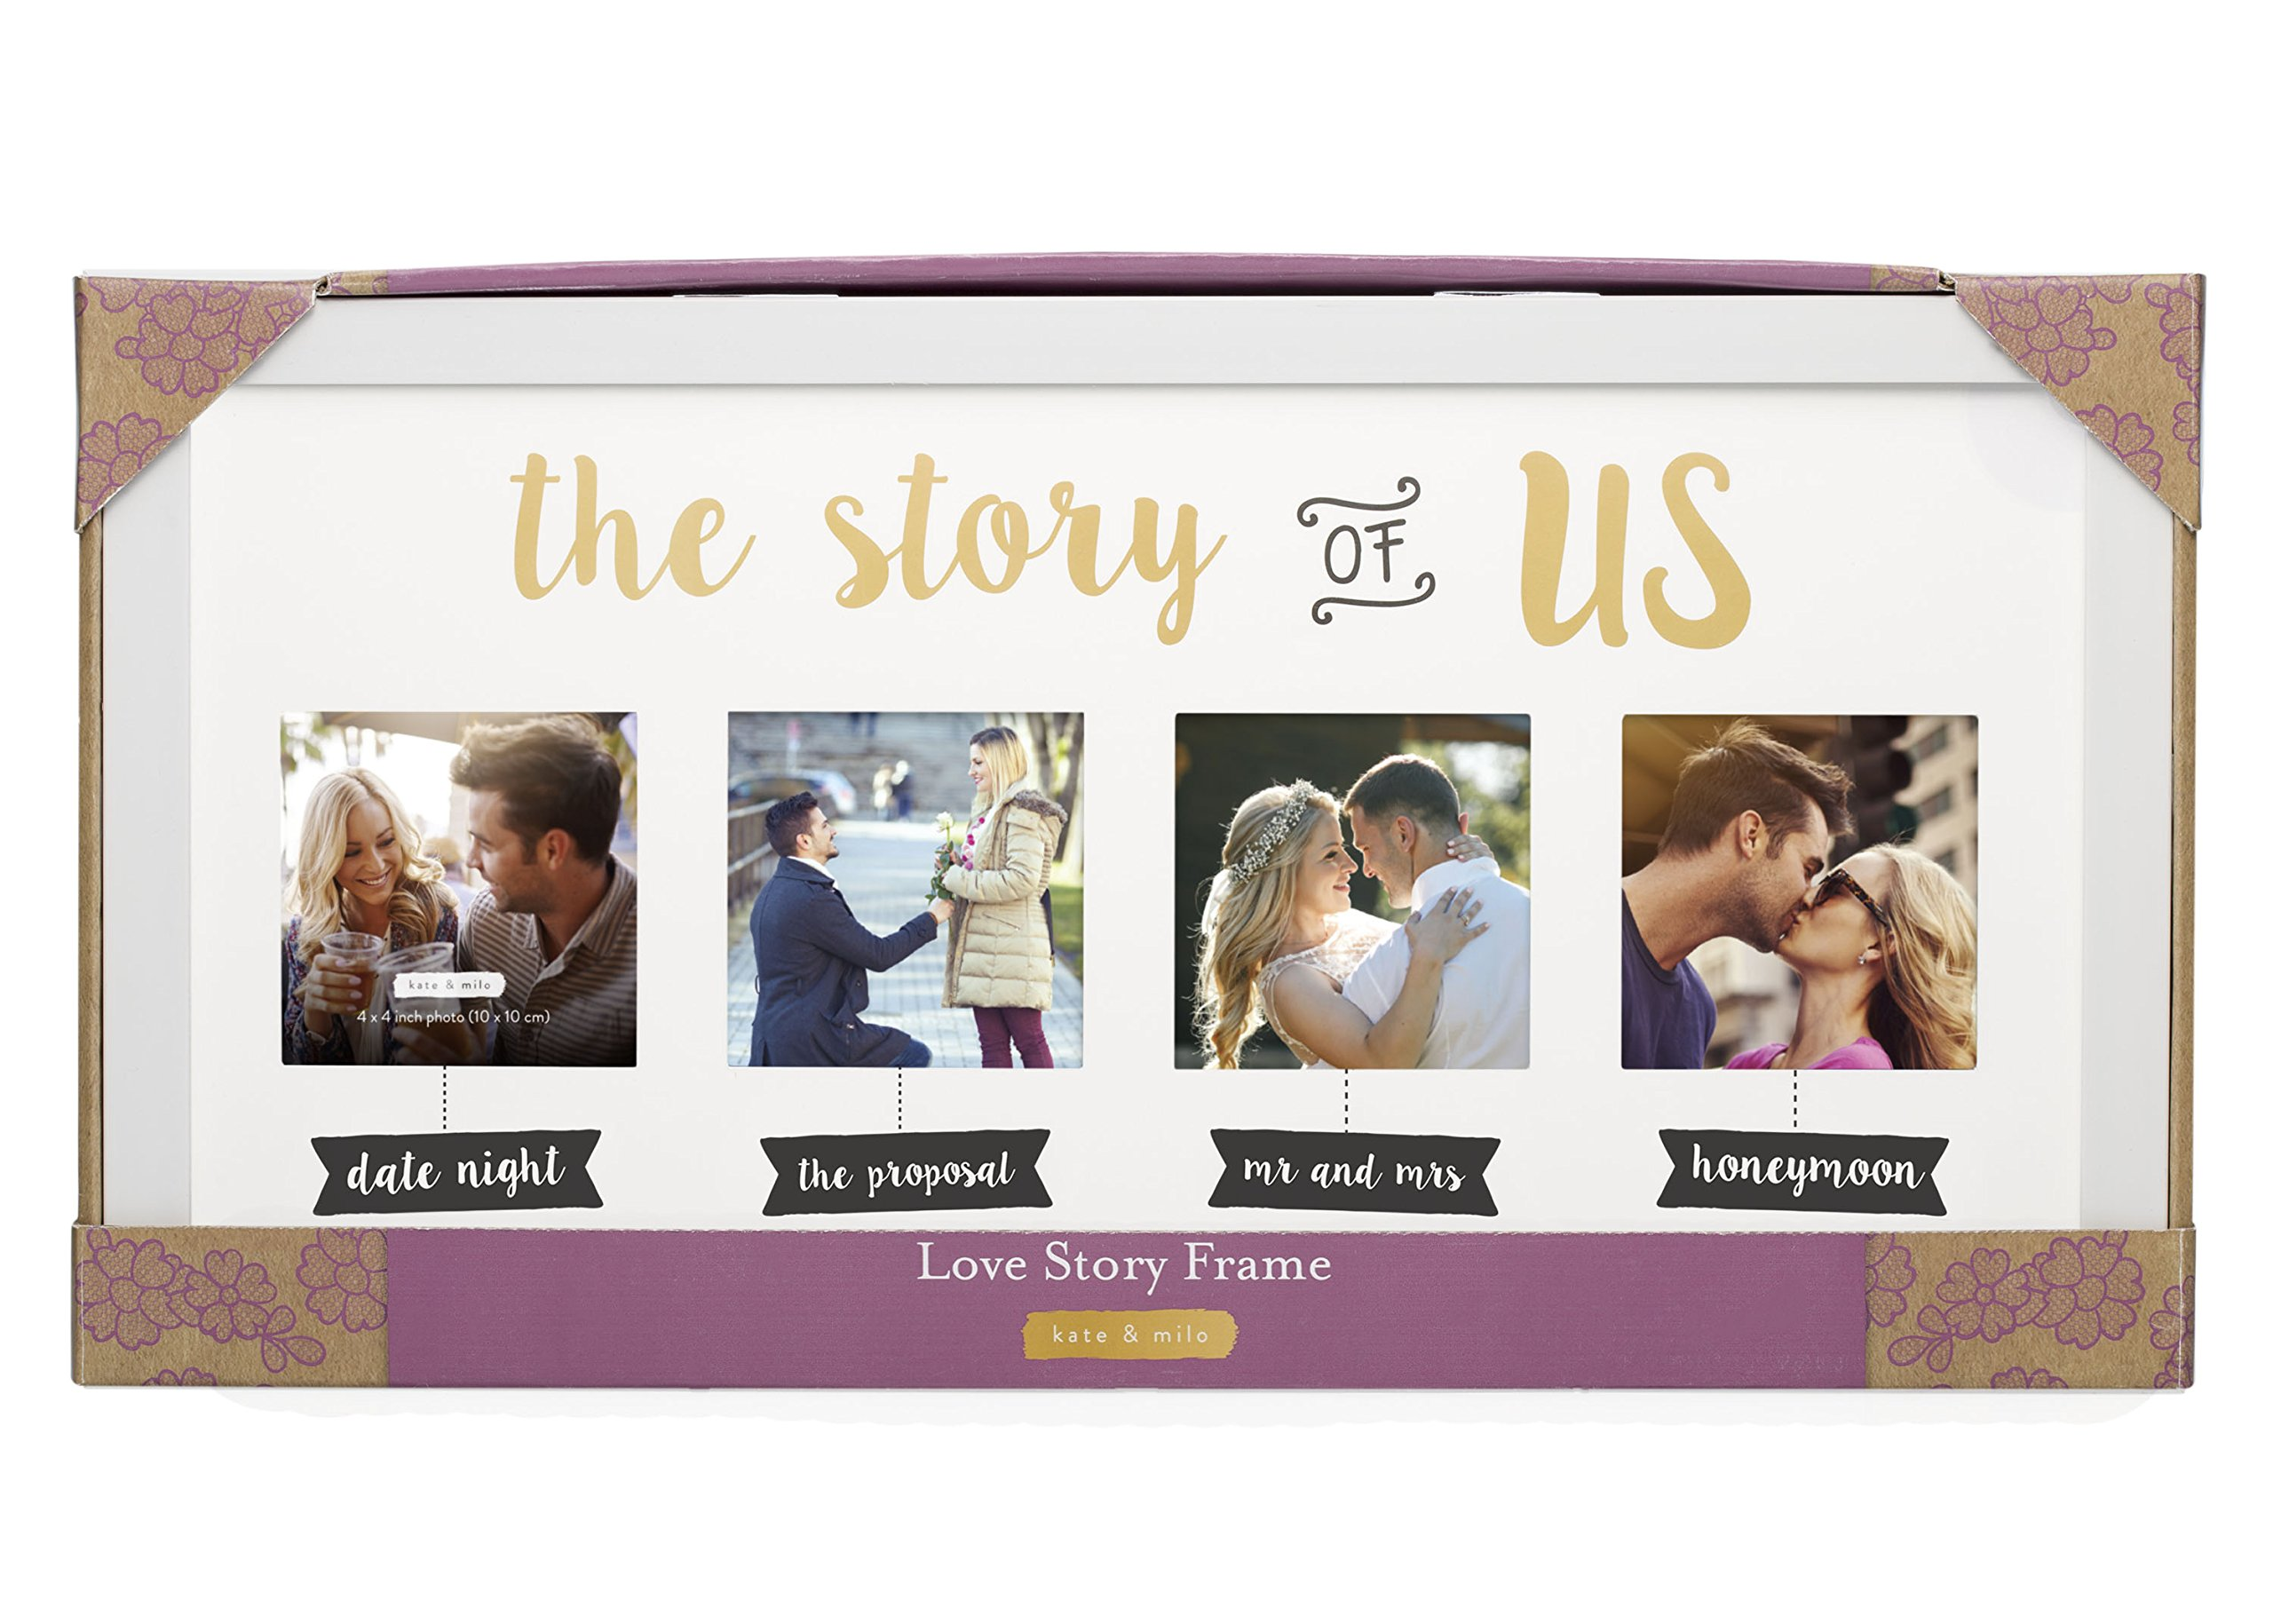 Kate & Milo 'The Story of Us' Photo Frame, White, Cherish Your Love Story, The Perfect Bridal Shower Gift by Kate & Milo (Image #3)